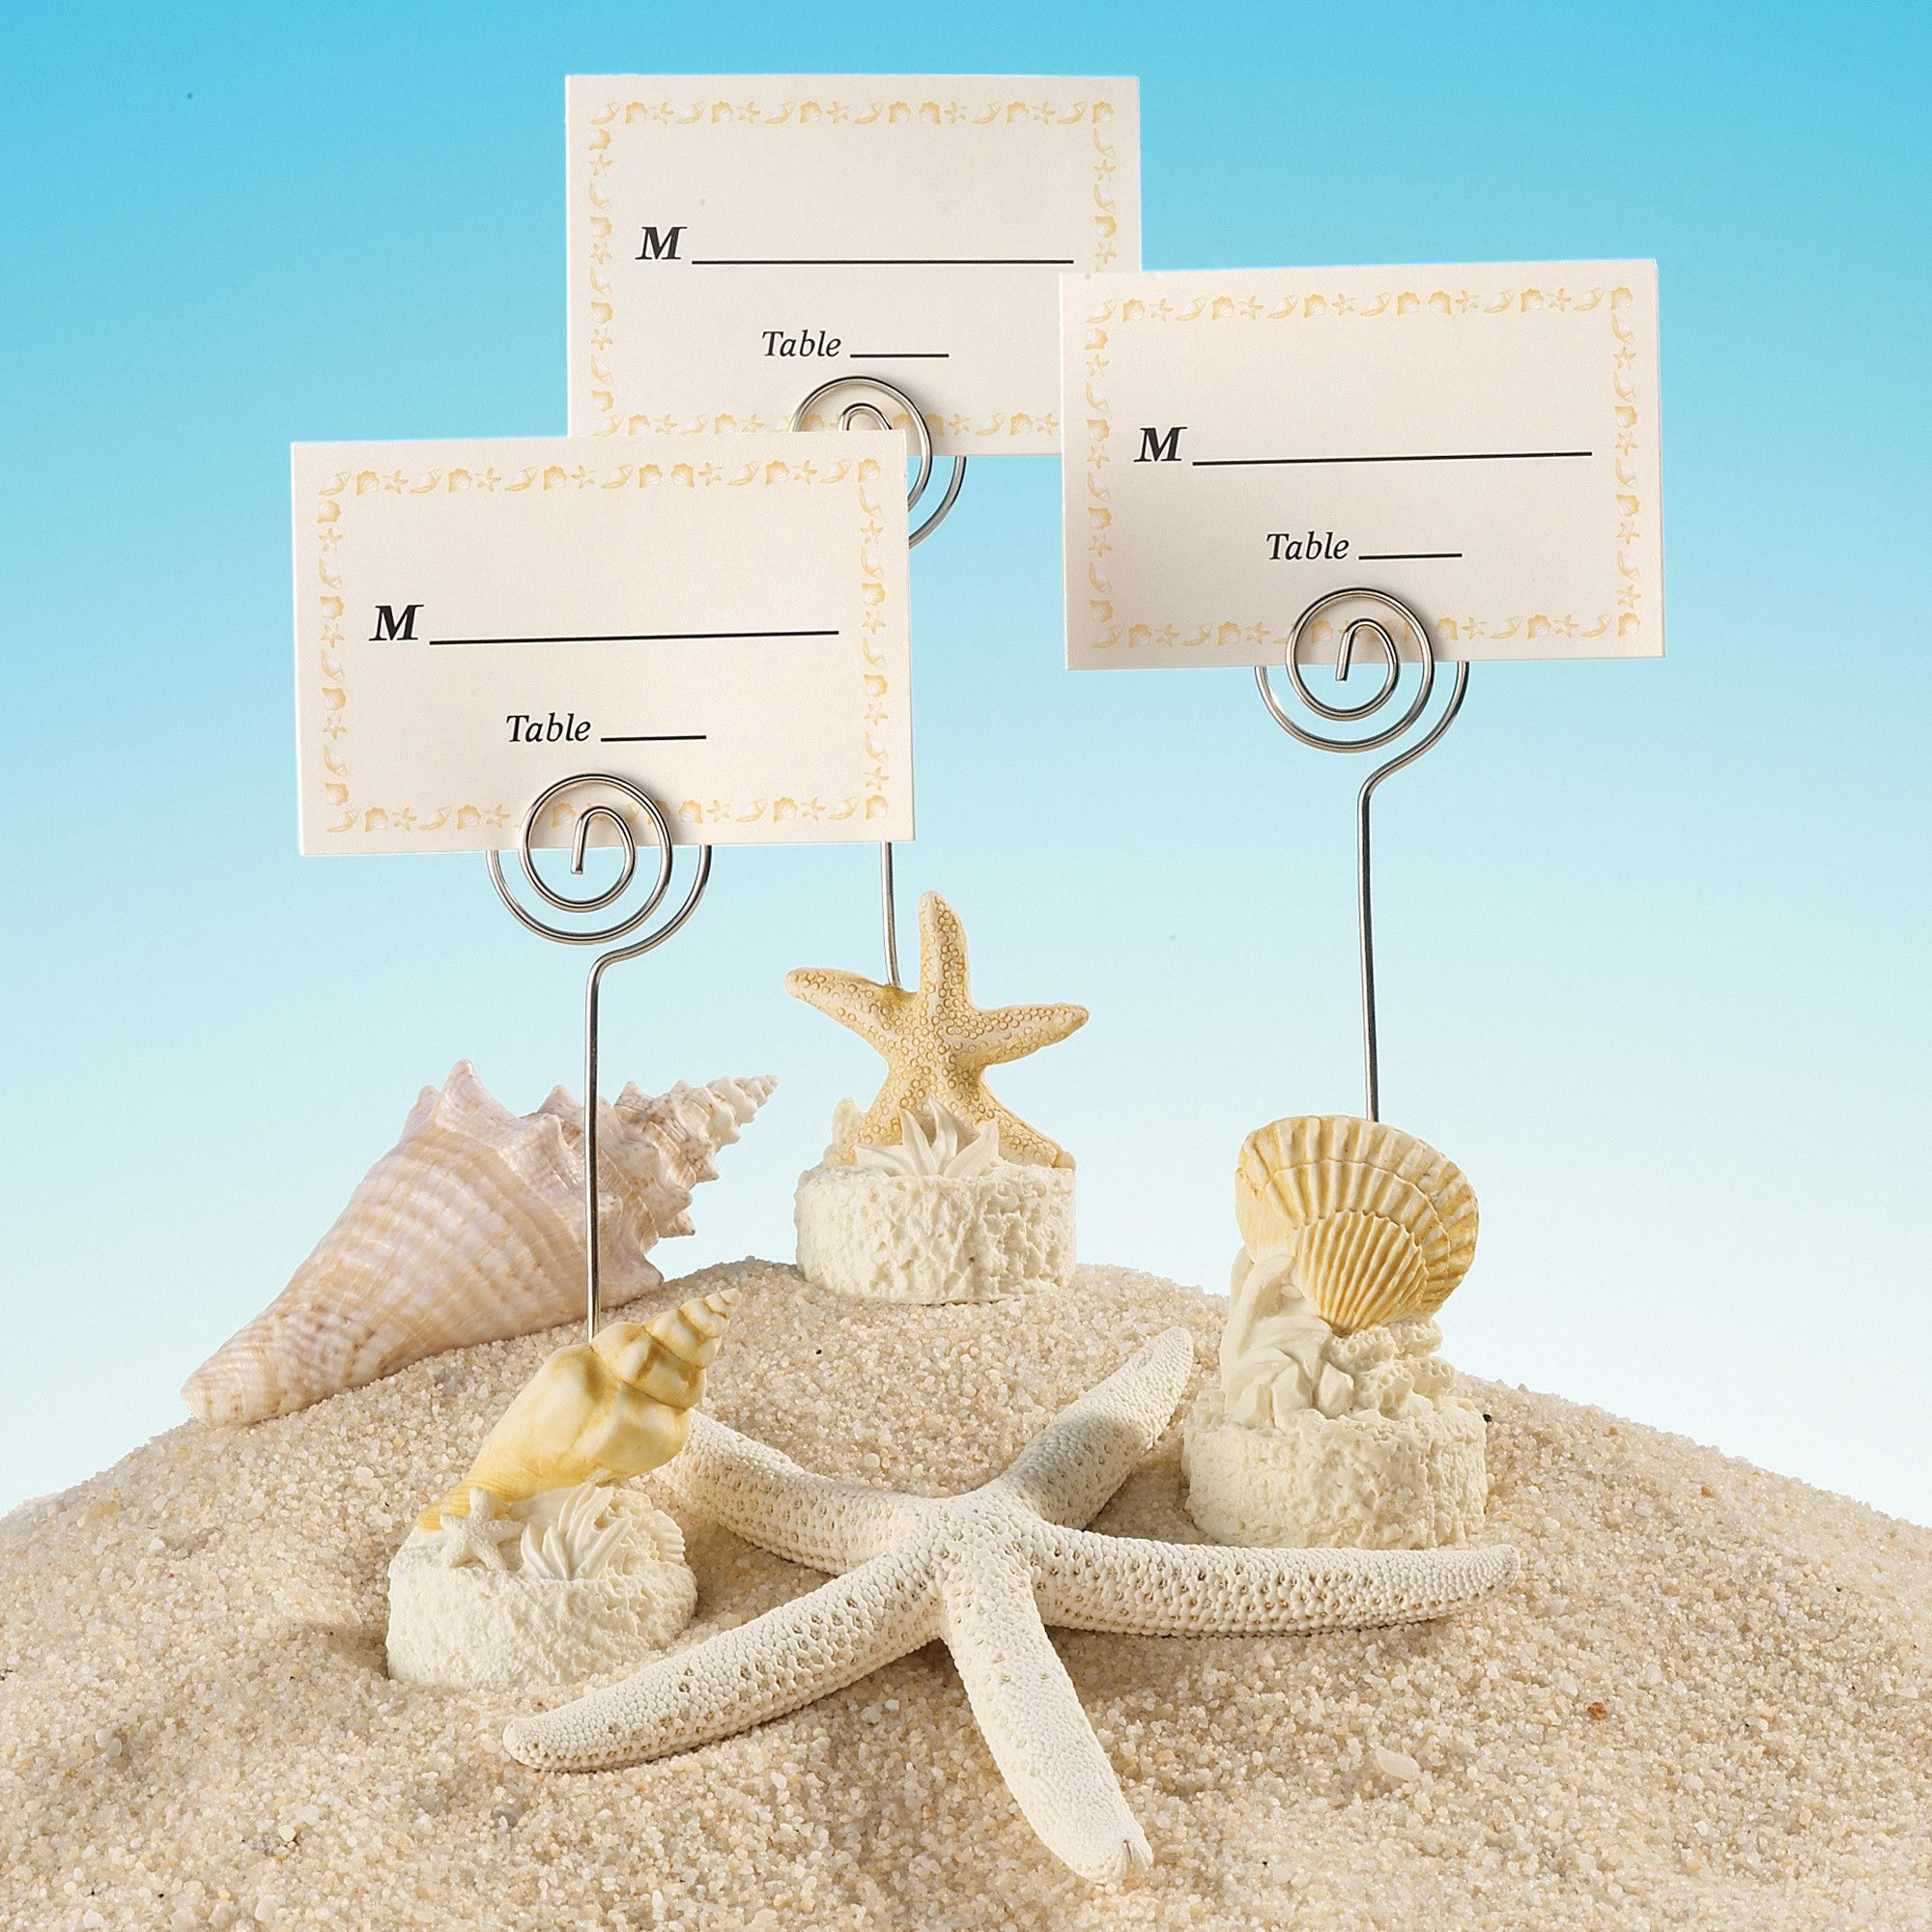 ideas for beach wedding party favors%0A Seashell Place Card Holders   Beach Place Card Holder and Place Card